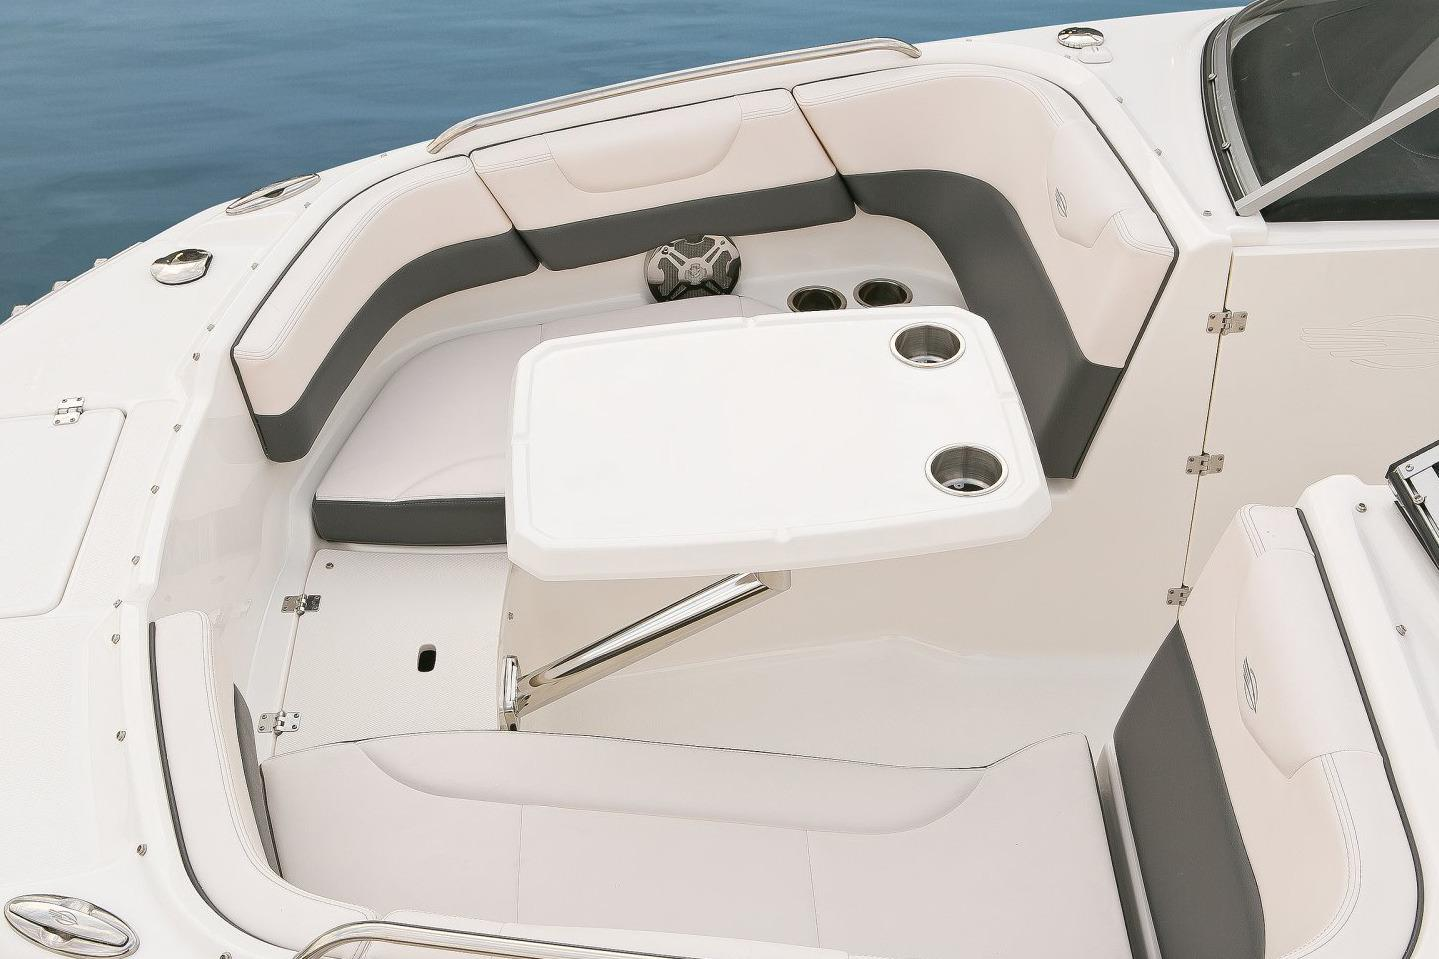 2016 Chaparral 230 Suncoast in Round Lake, Illinois